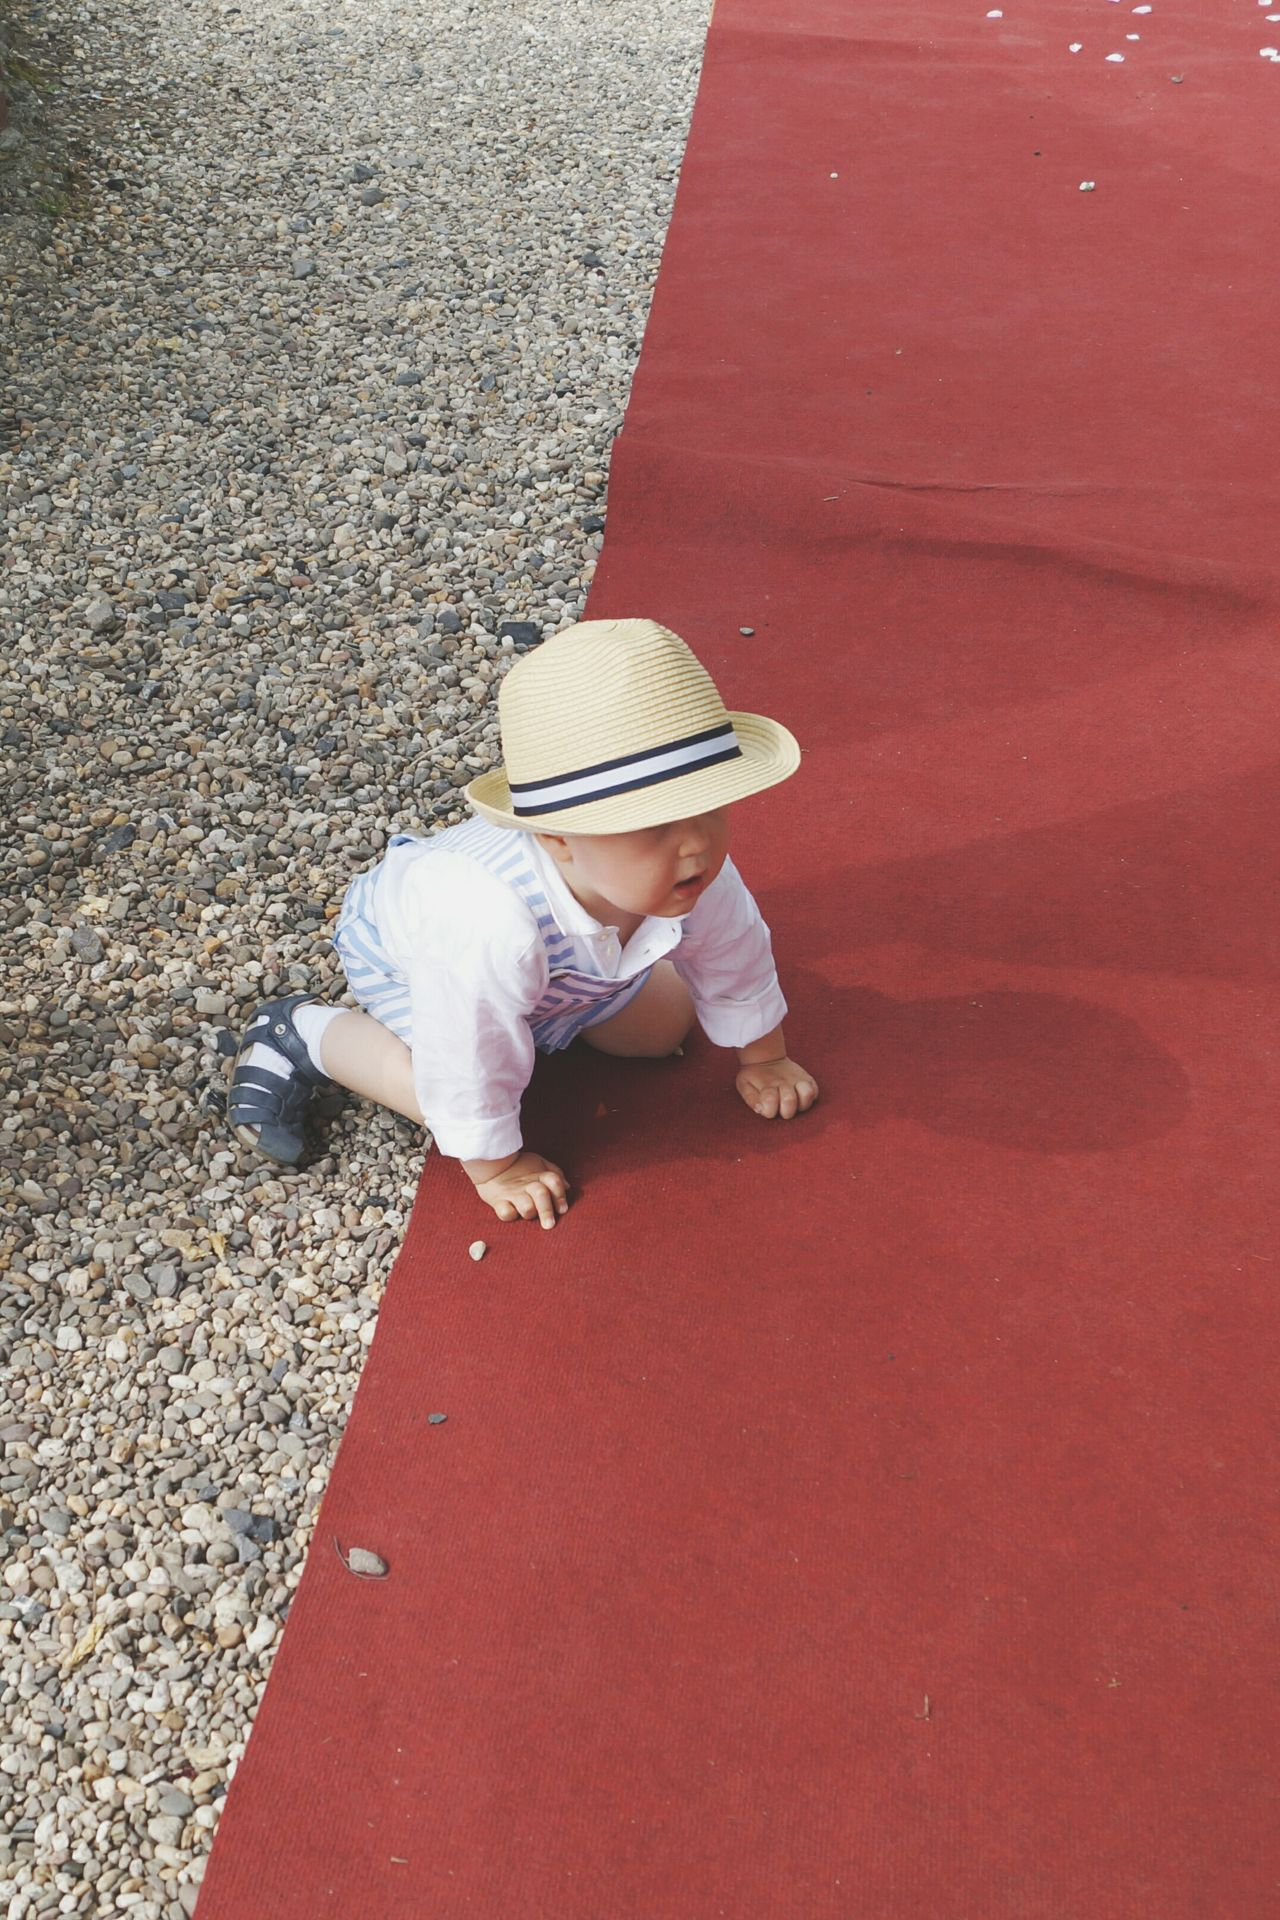 Exploring Toddler  Babyboy Sitting Crawling On The Floor Red Carpet Gravel Path Pebbles Childrens Clothing Hat Exploring Curiosity Child Wedding Dressed Up Looking Down EyeEm Best Shots From My Point Of View Happy Day Outdoors The Street Photographer - 2016 EyeEm Awards Playing EyeEm Best Edits Boy The Photojournalist - 2016 EyeEm Awards